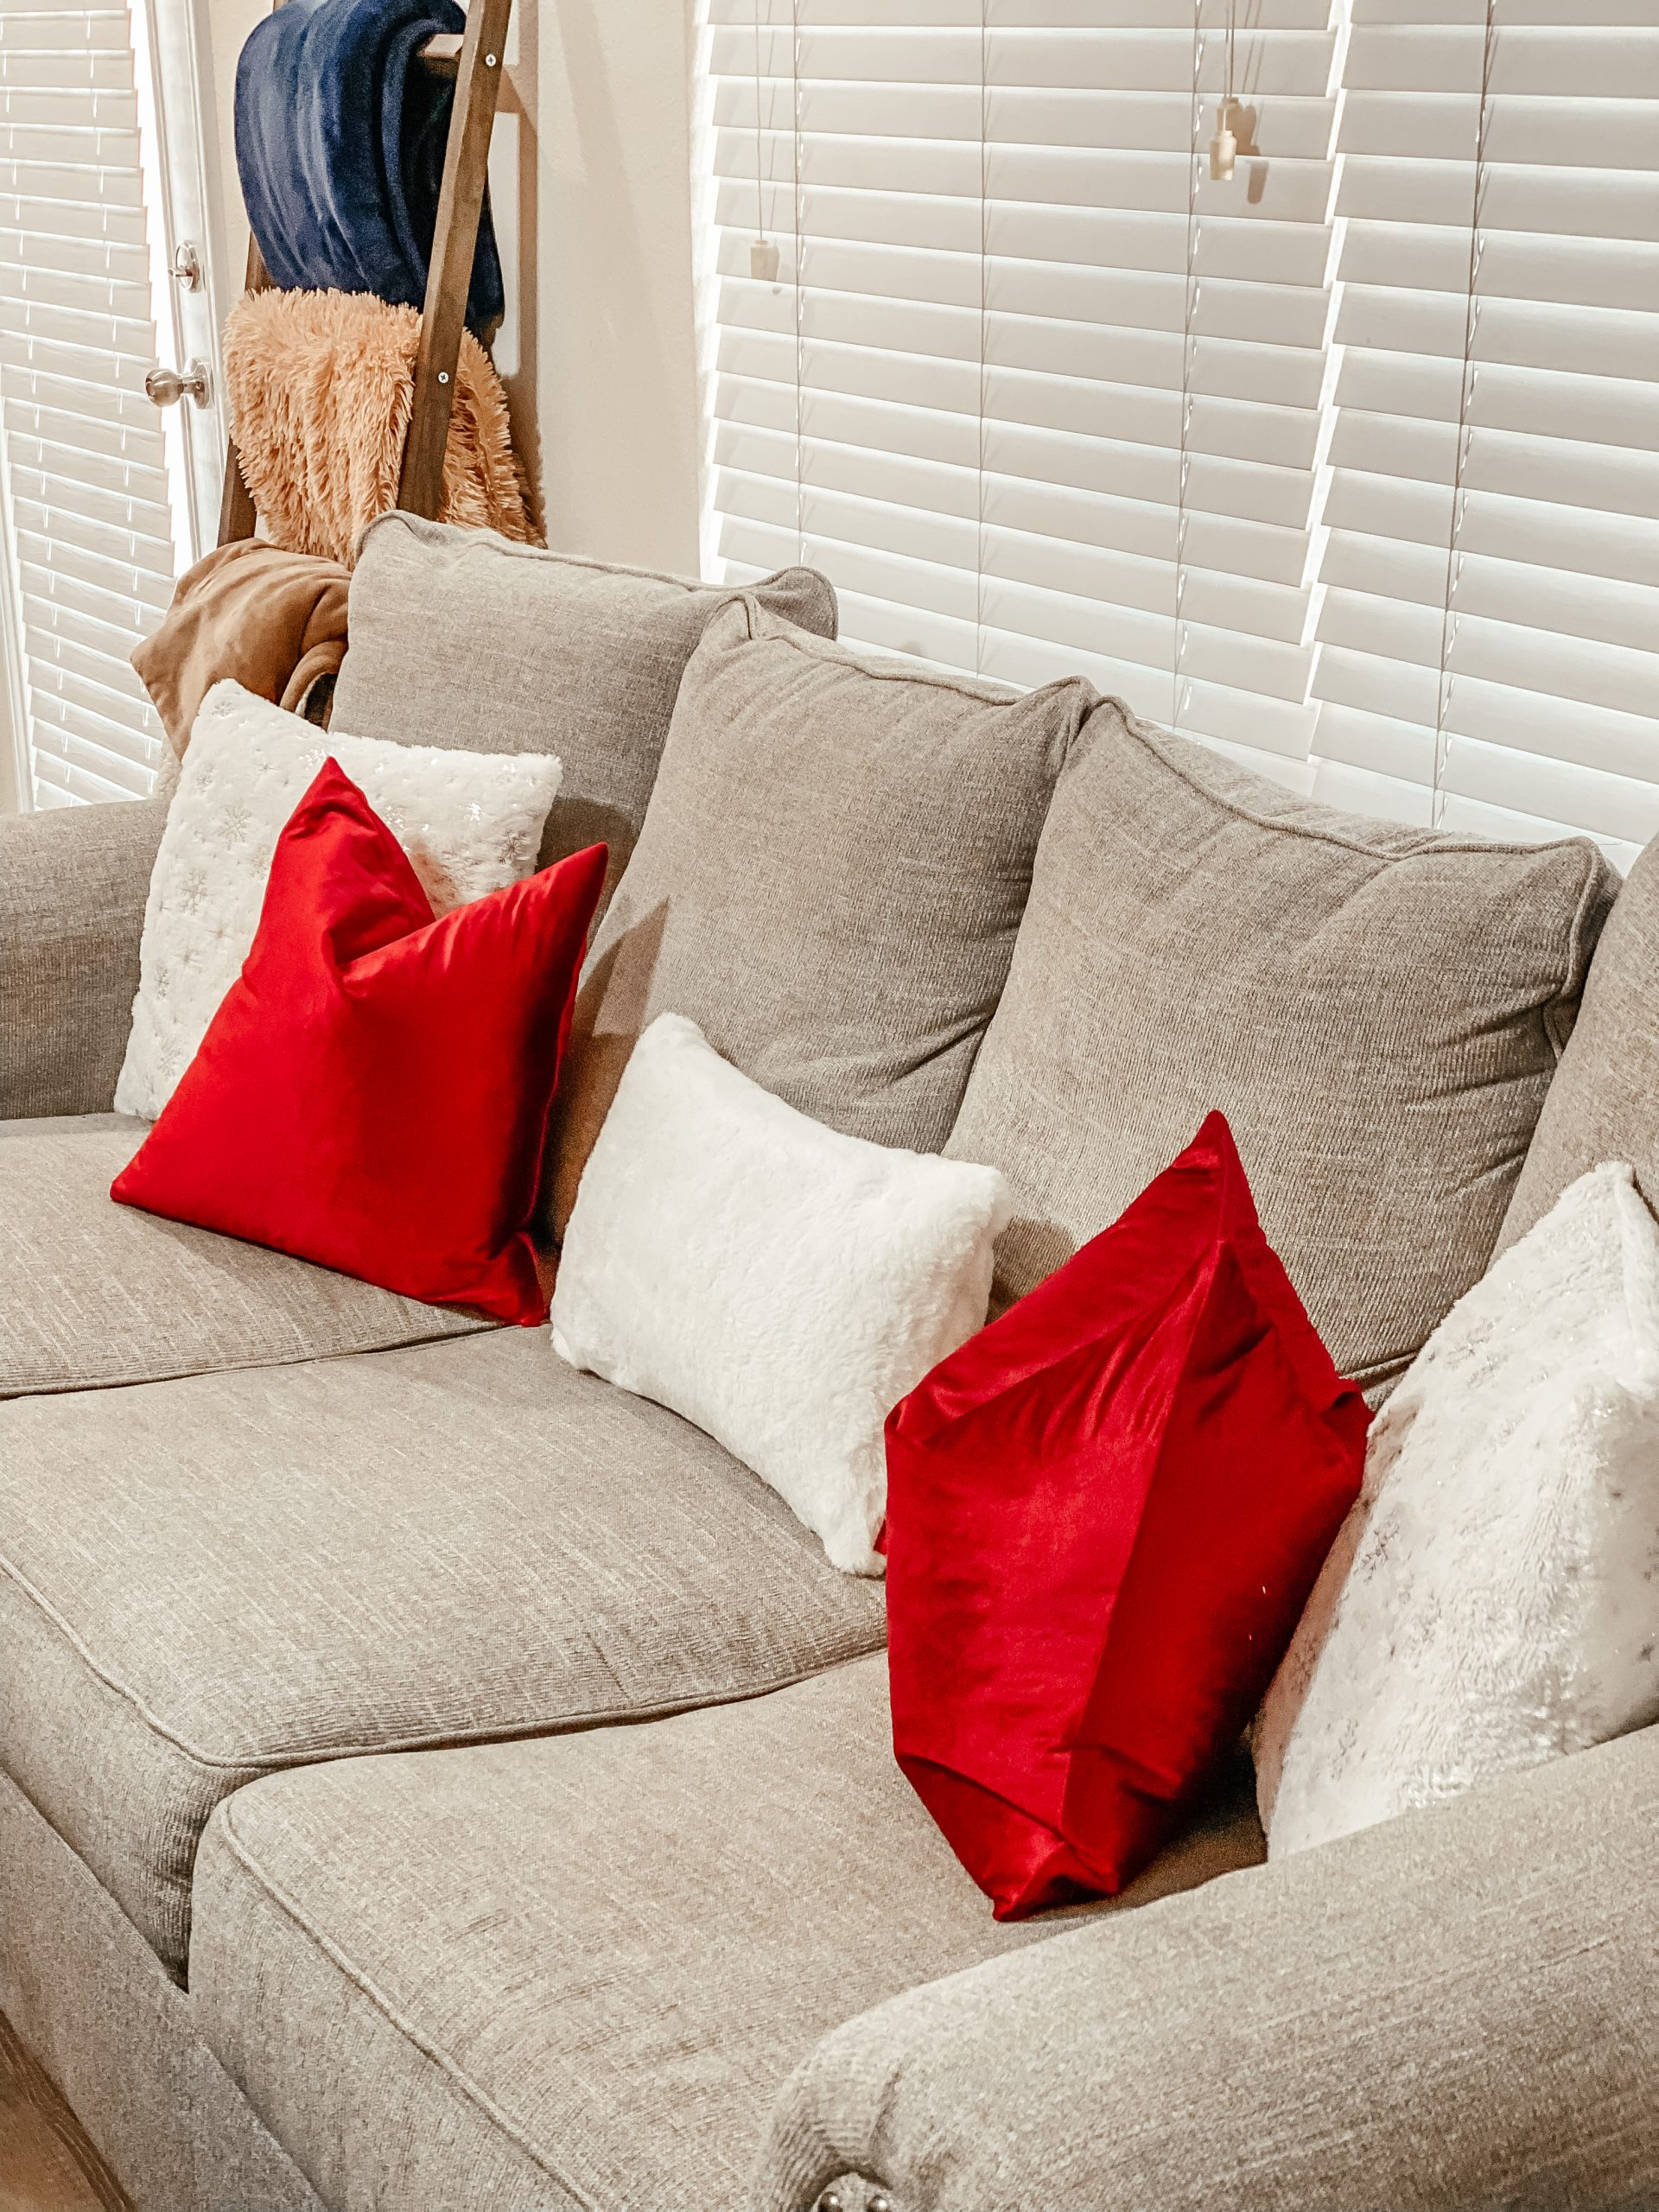 Red and White Christmas Throw Pillows